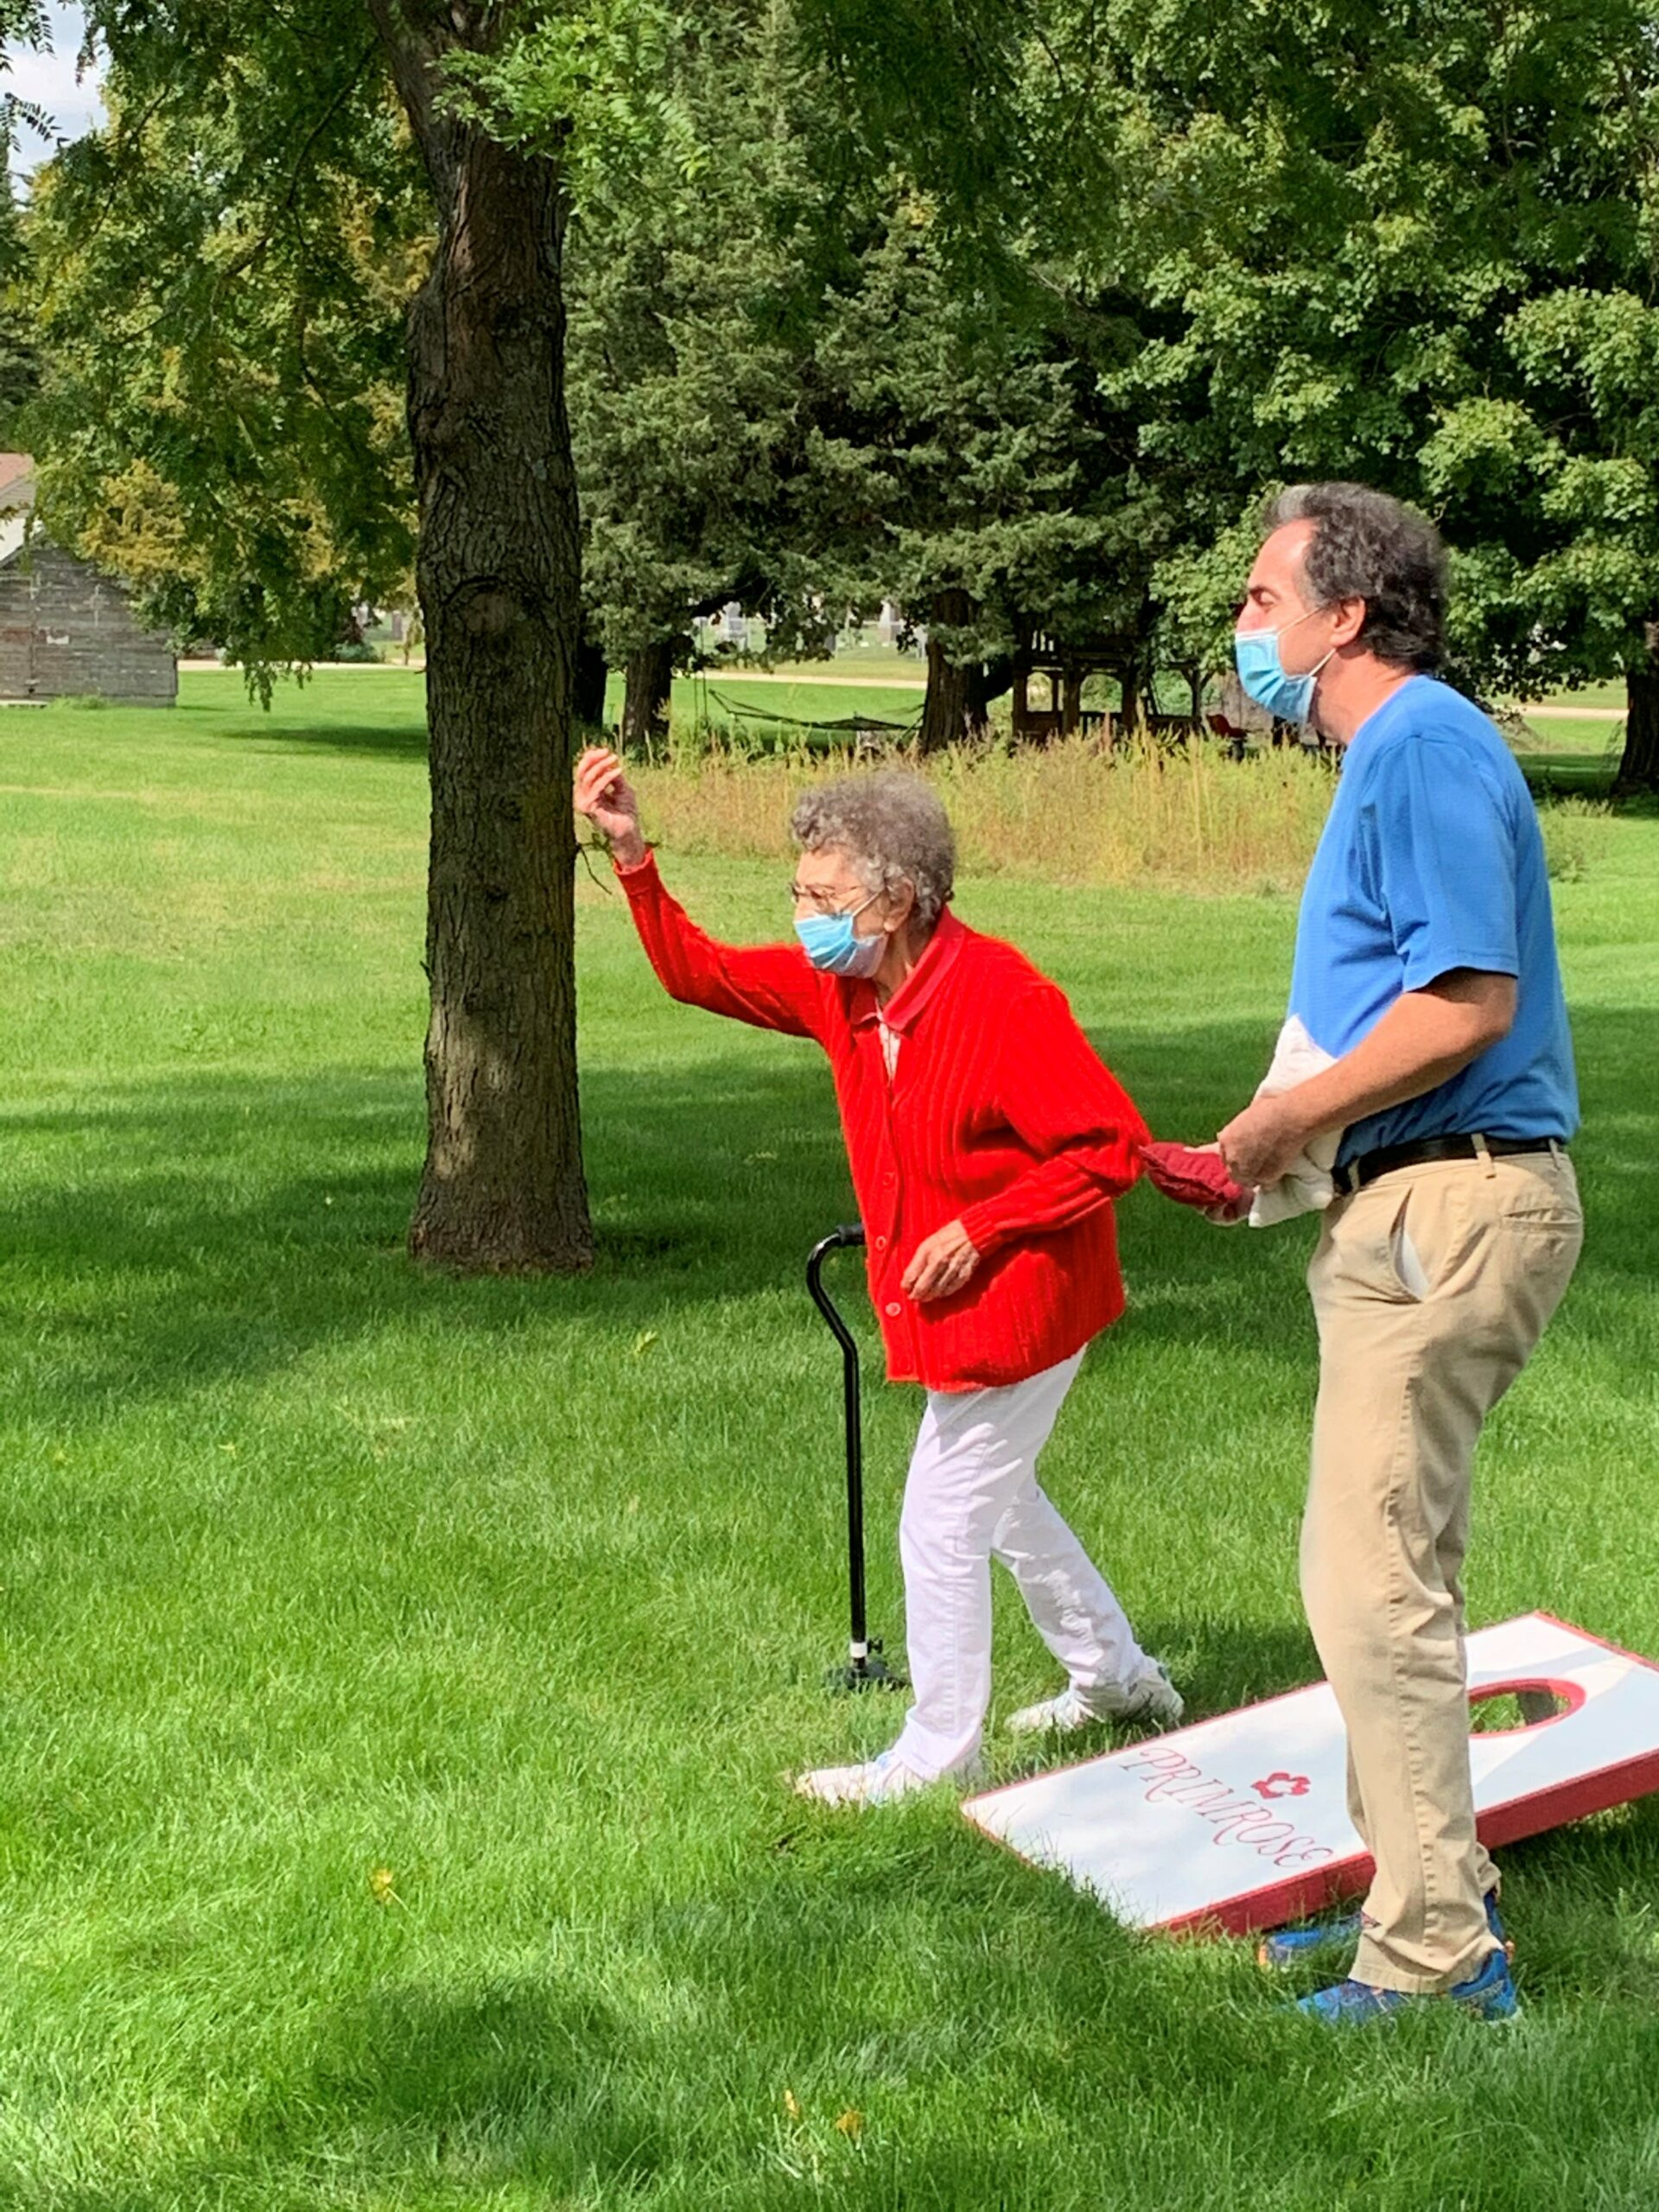 Edith shows her competitive side challenging our LEC, Steve, to a fierce game of cornhole!